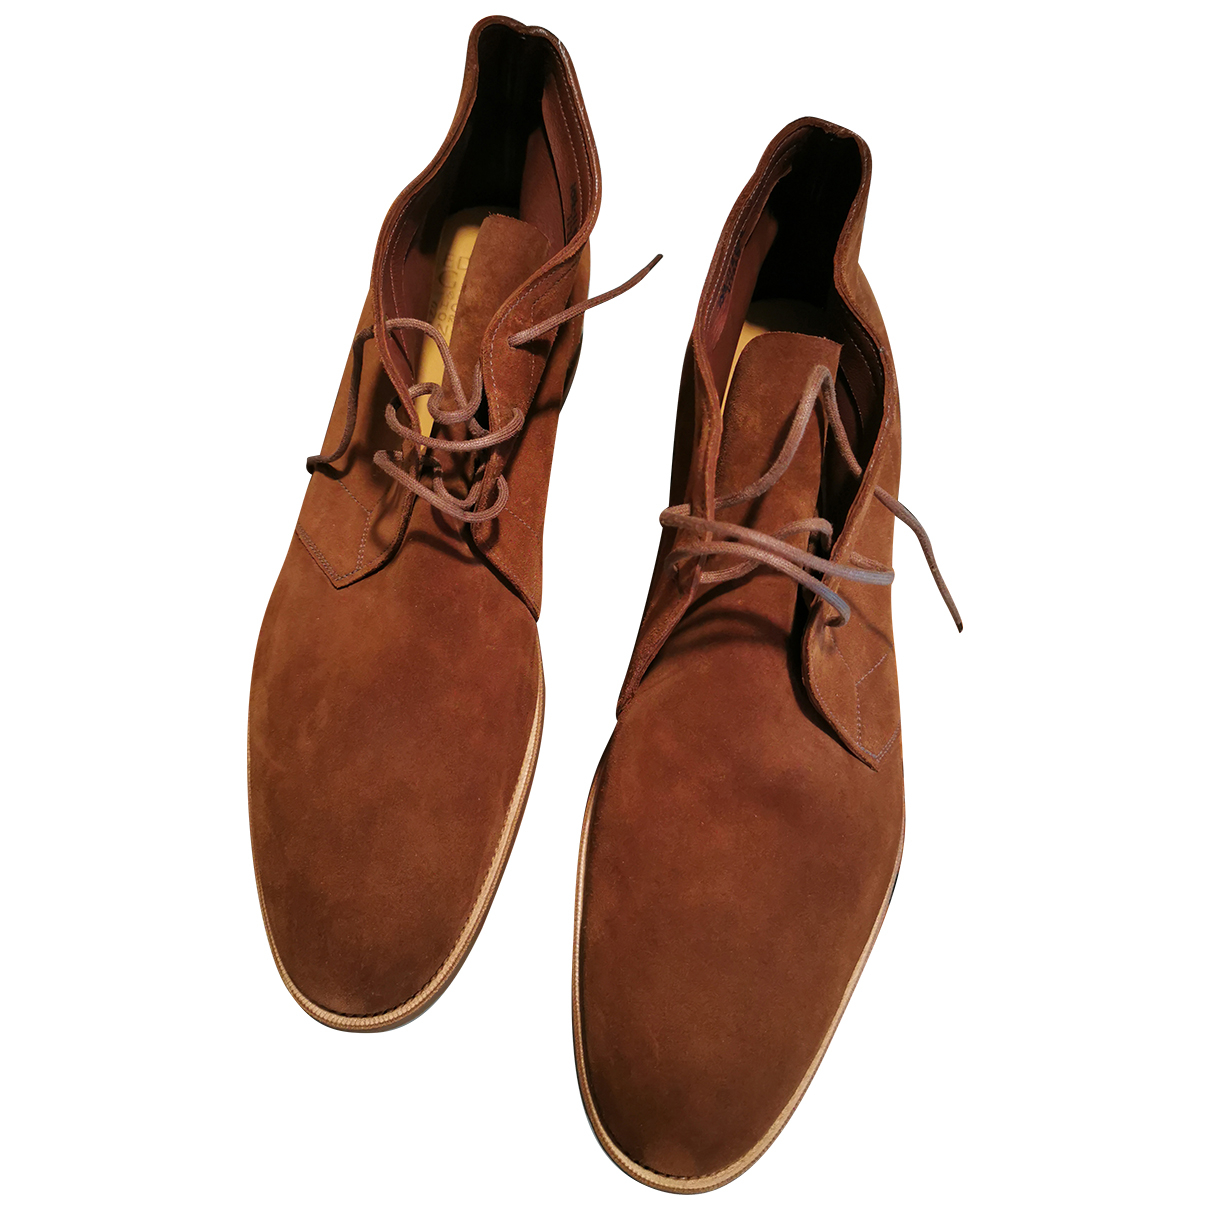 Edward Green N Brown Suede Boots for Men 10.5 UK